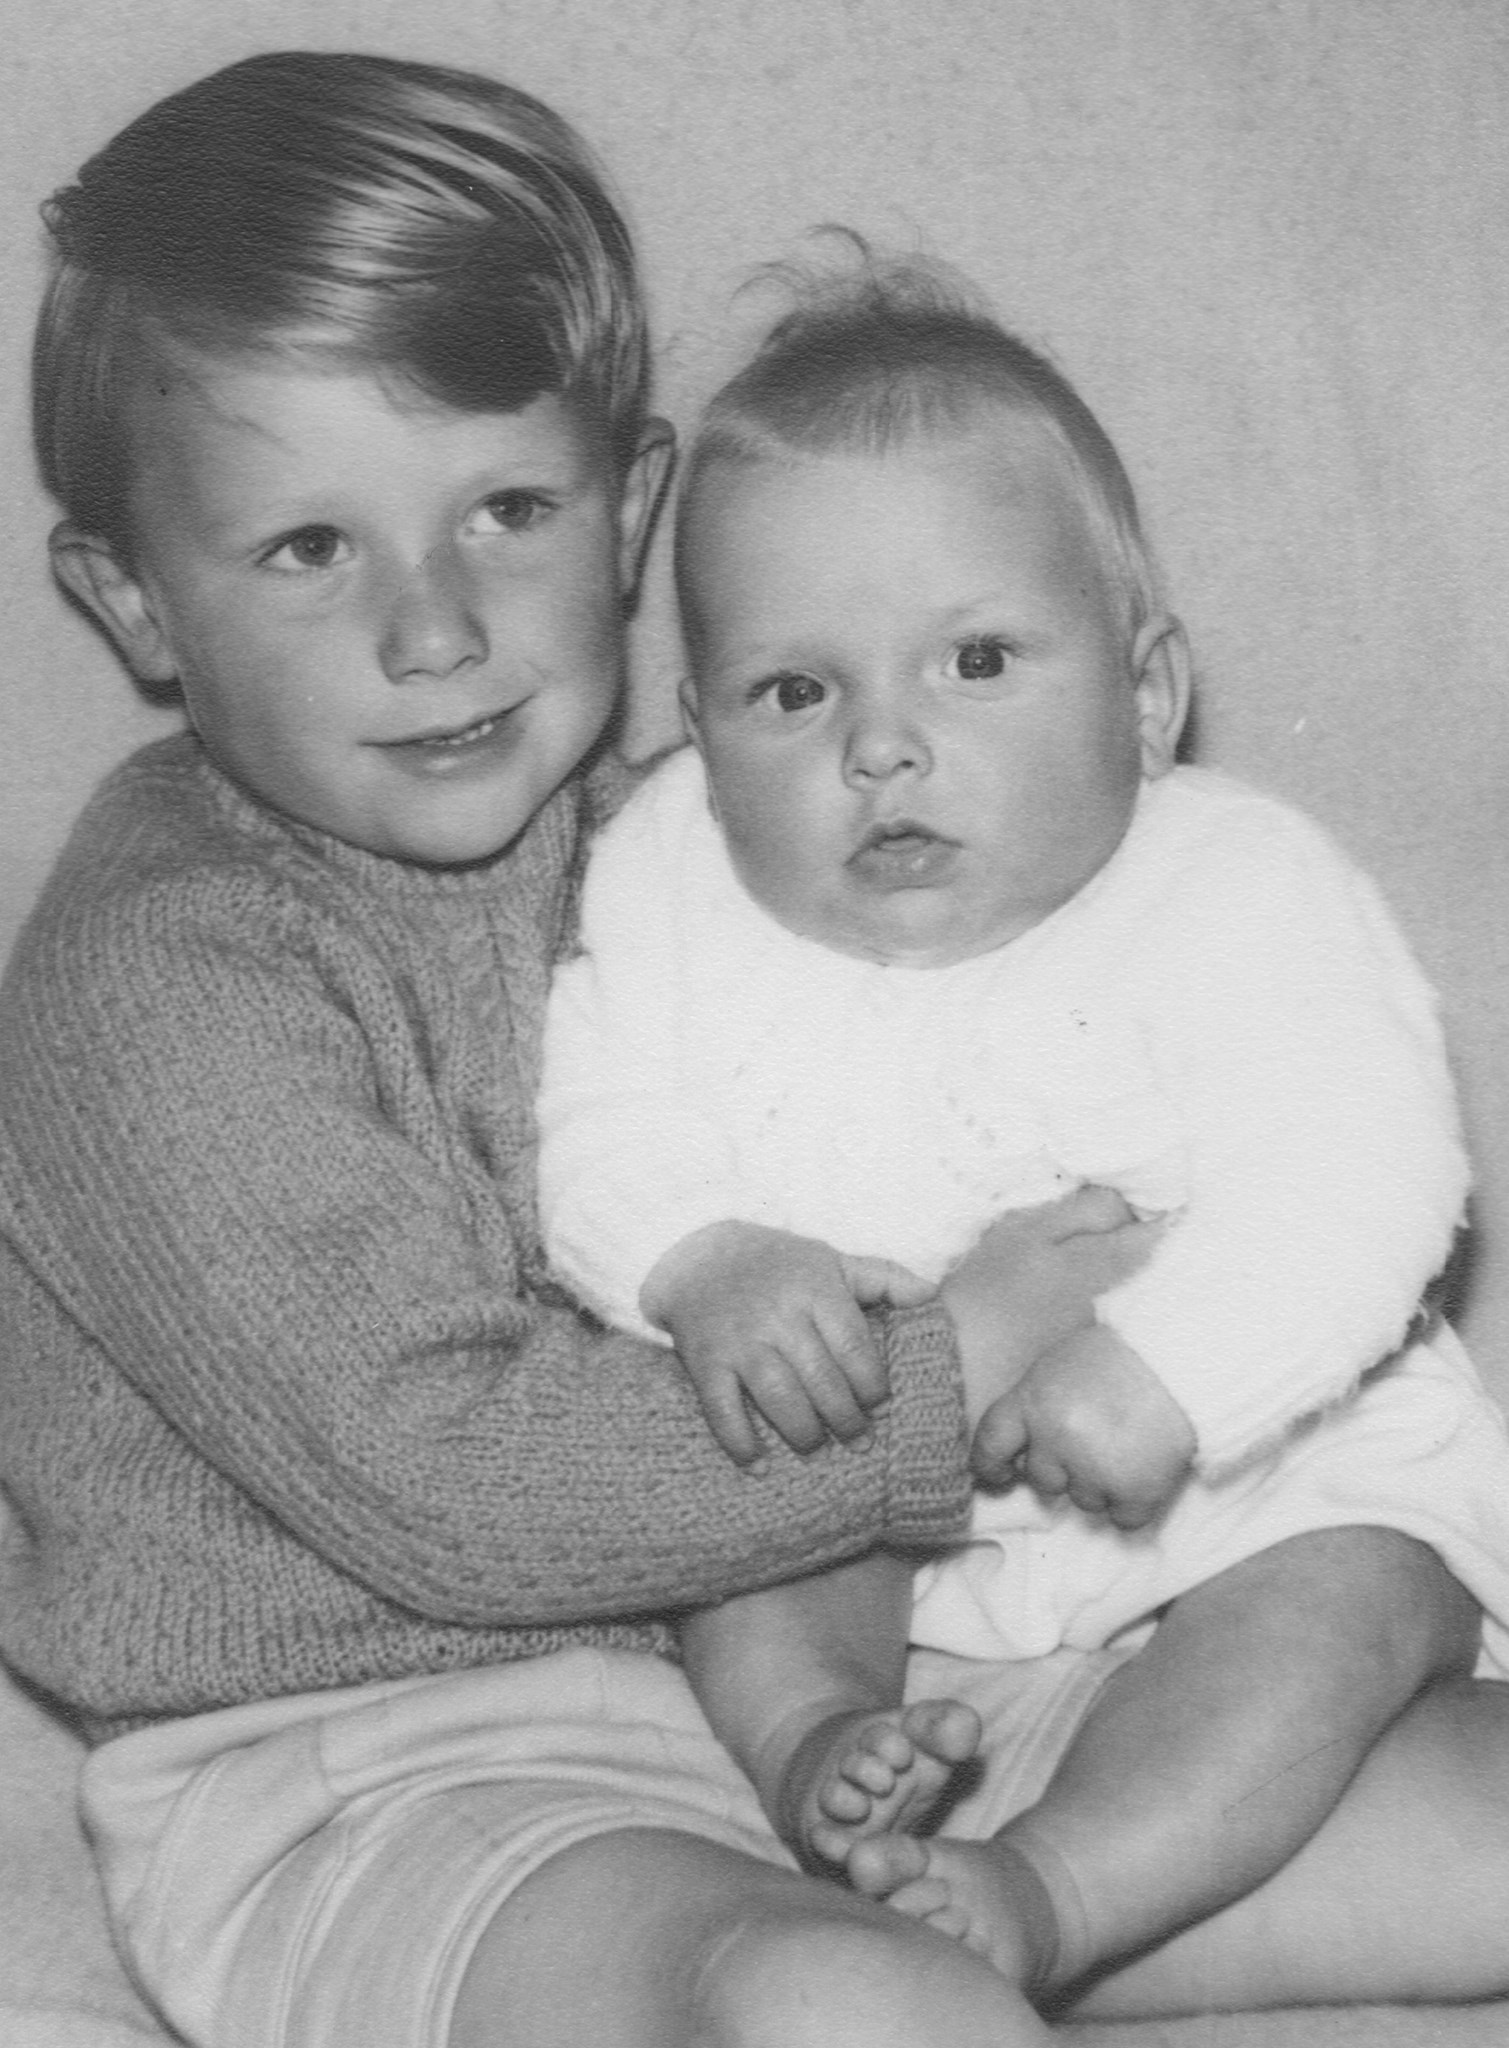 Baby John with his proud brother Paul